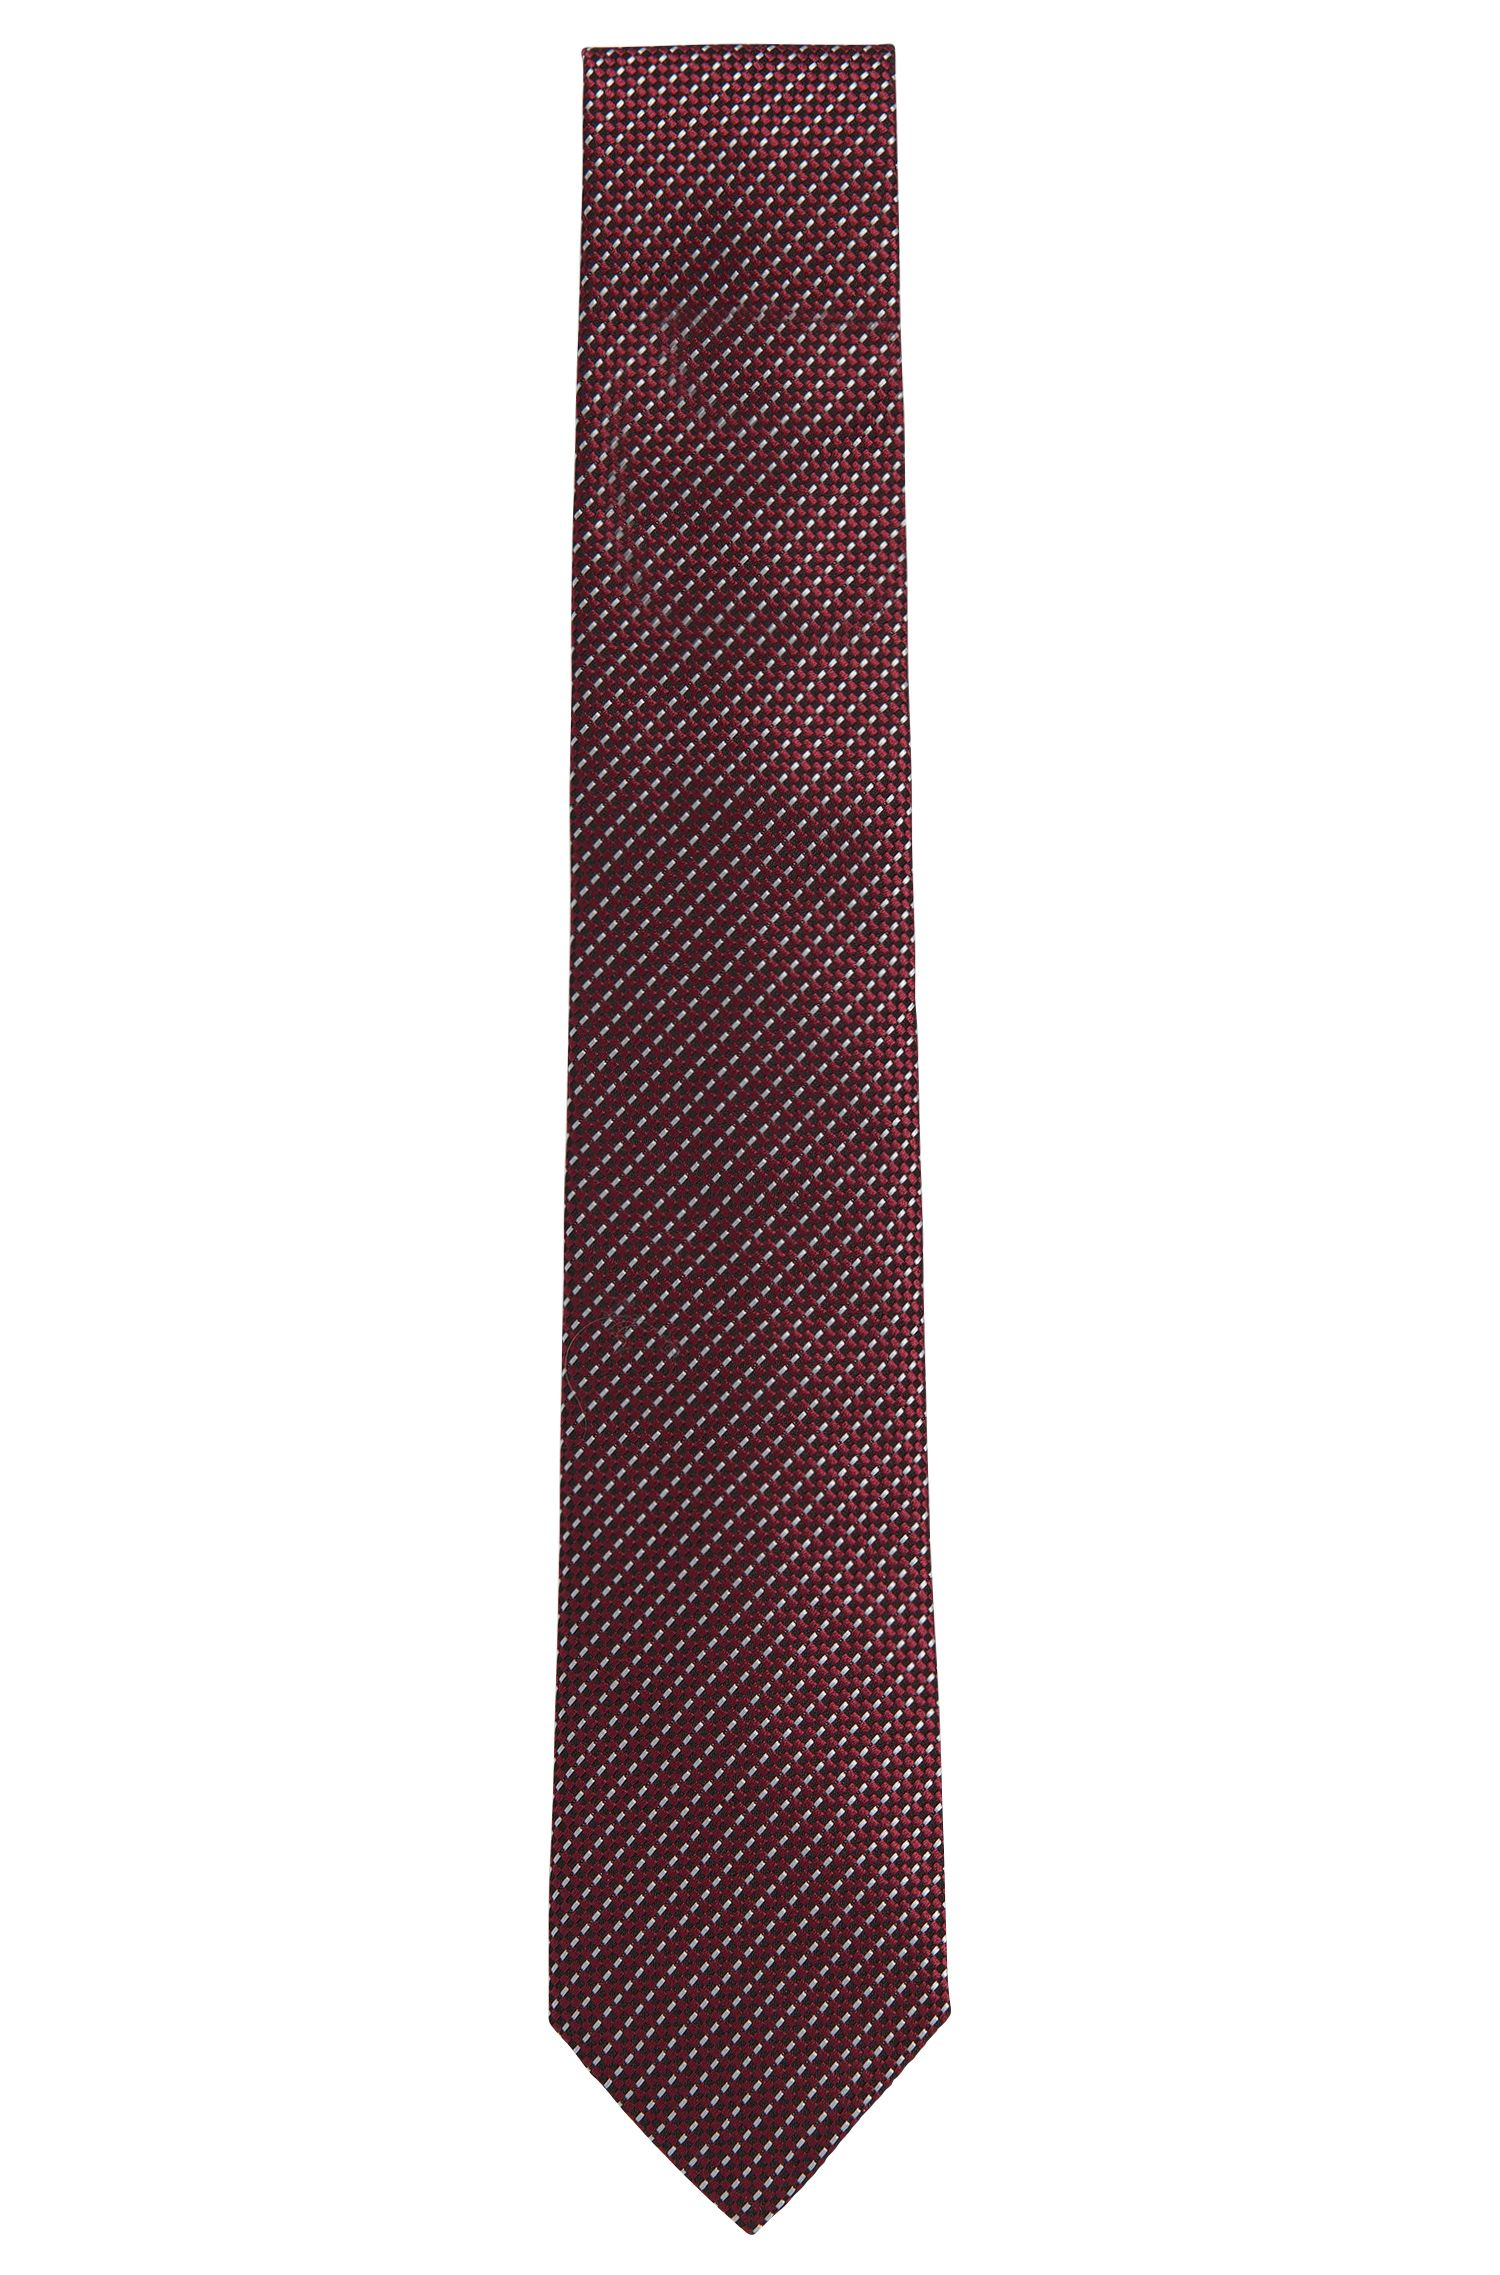 'T-Tie 7.5 cm' | Regular, Italian Silk Patterned Tie